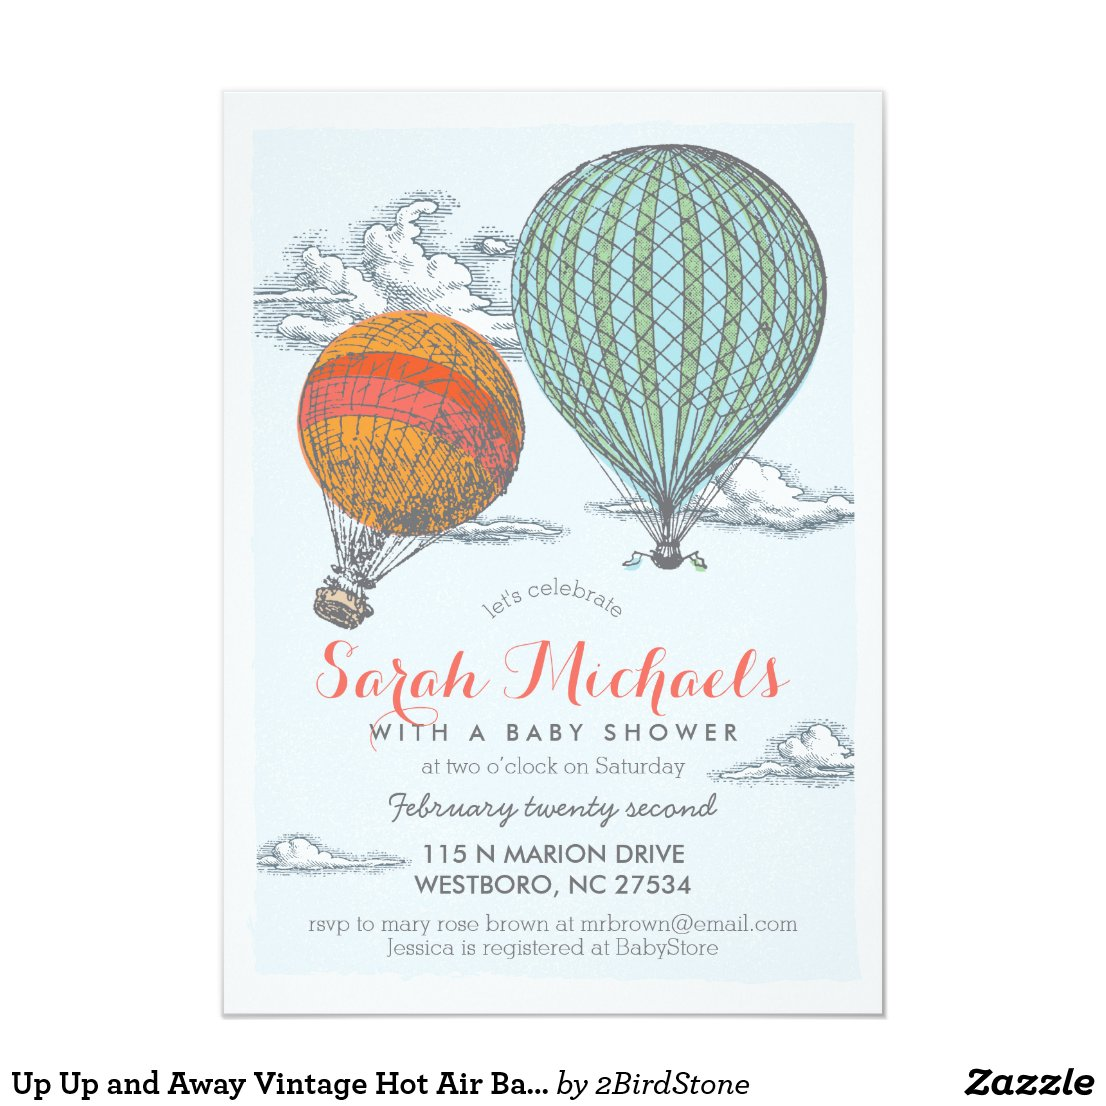 Up Up and Away Vintage Hot Air Balloon Baby Shower Card